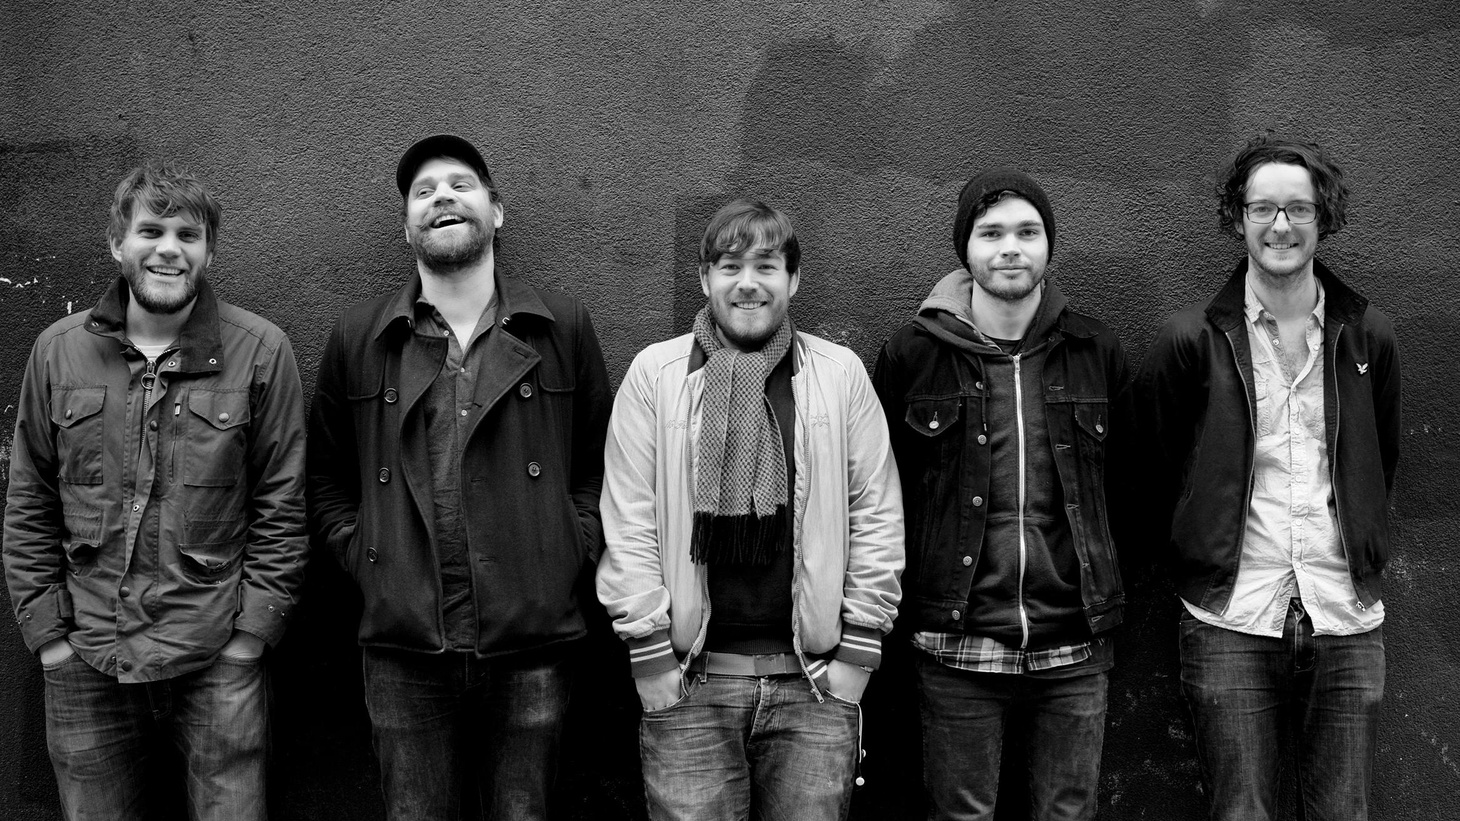 As Glaswegian indie rockers Frightened Rabbit prepare for their major label debut on Atlantic in 2013, they tide us over with...